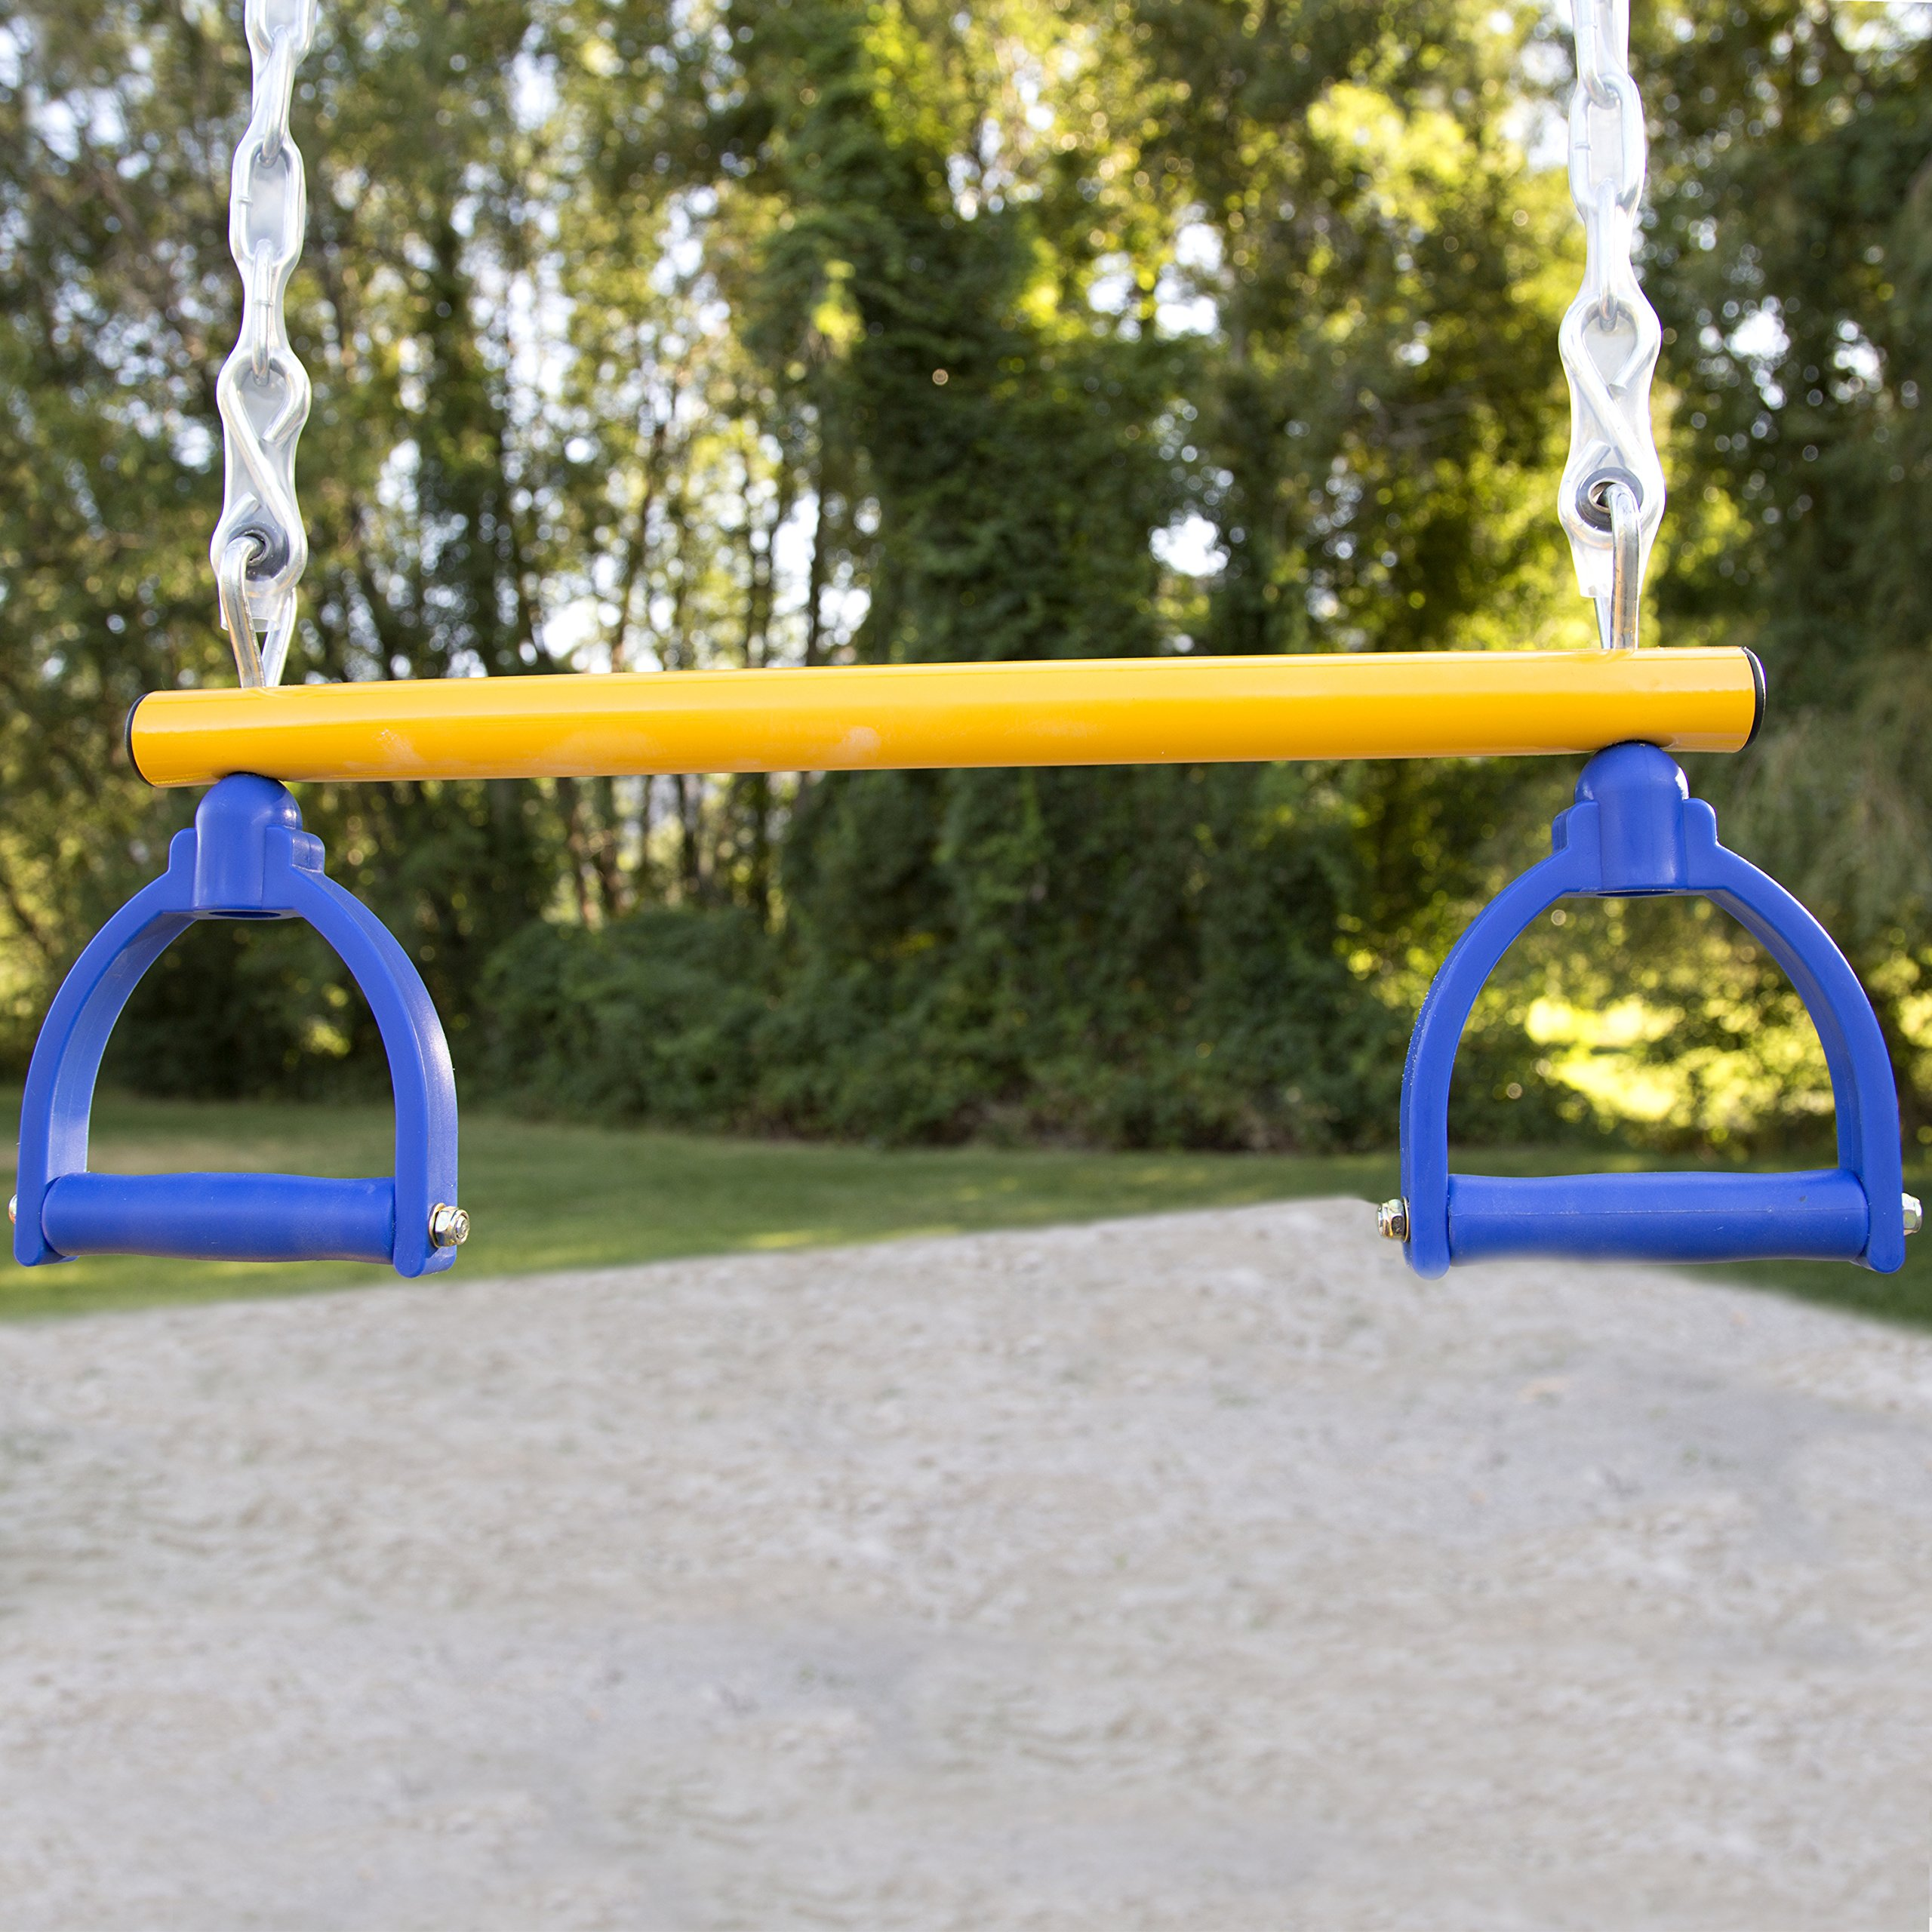 Skywalker Sports Geo Dome Climber with Swing Set by Skywalker Sports (Image #10)